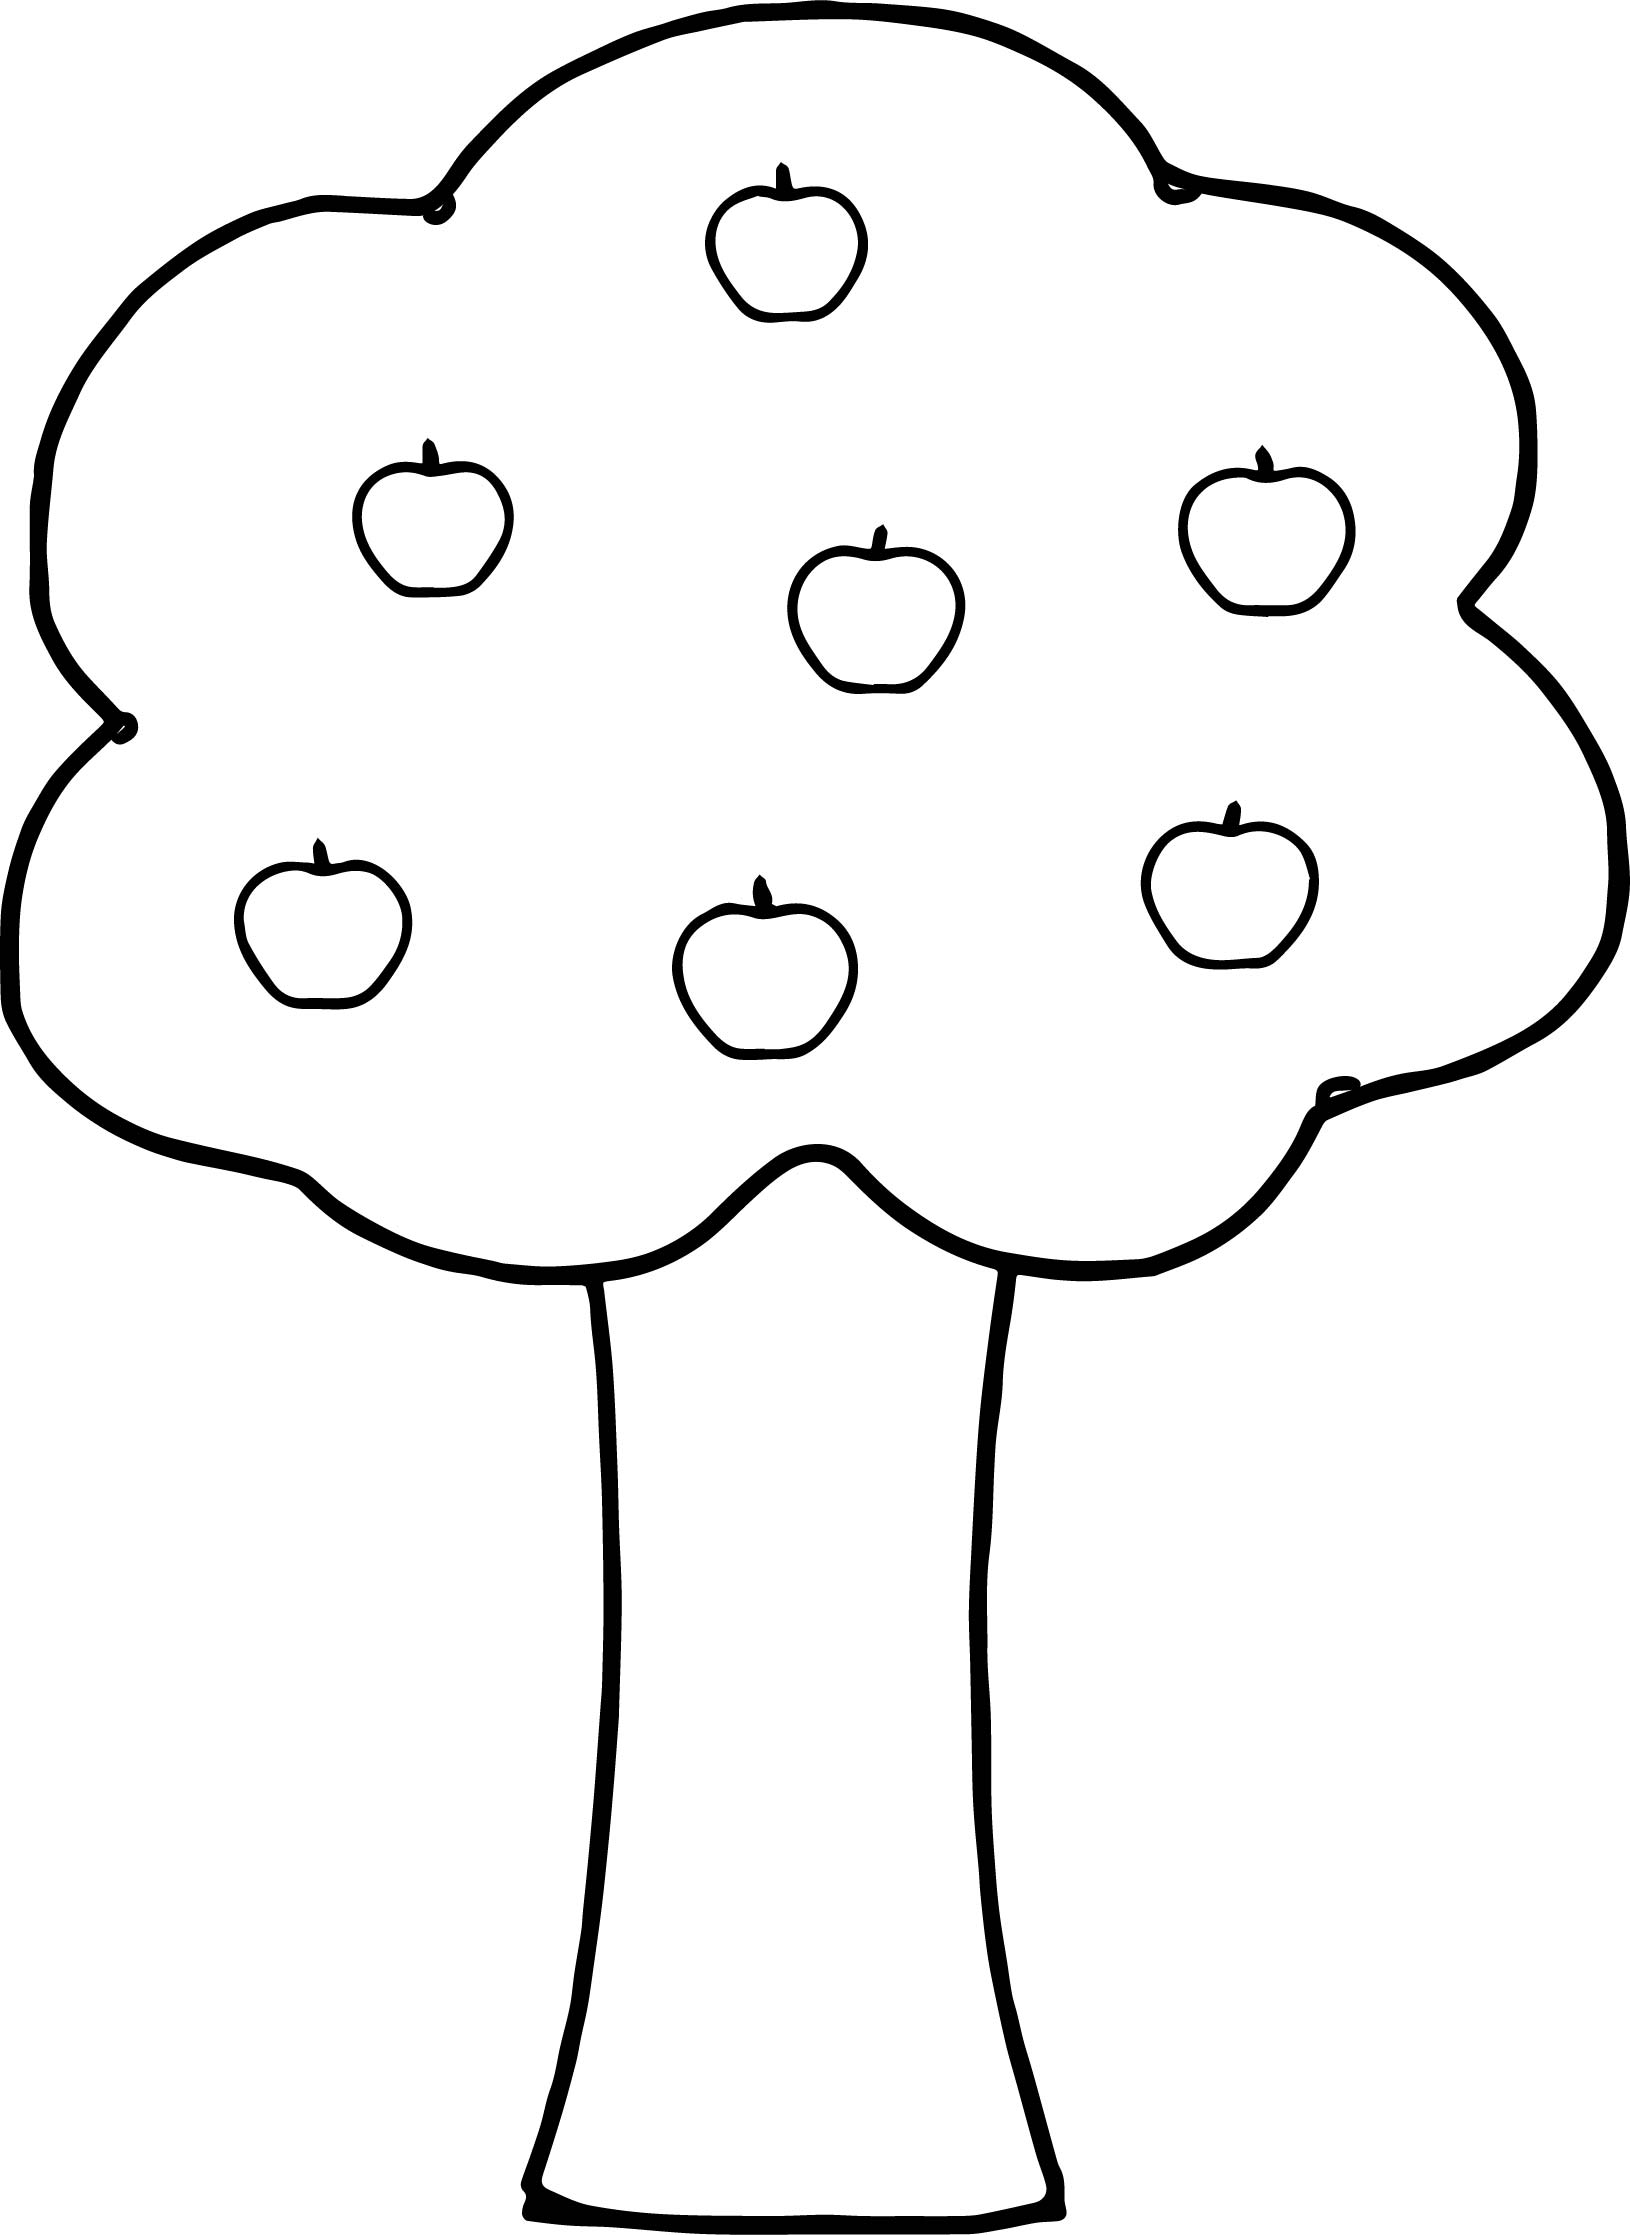 Coloring Apple Tree Worksheet Printable Worksheets And Activities For Teachers Parents Tutors And Homeschool Families